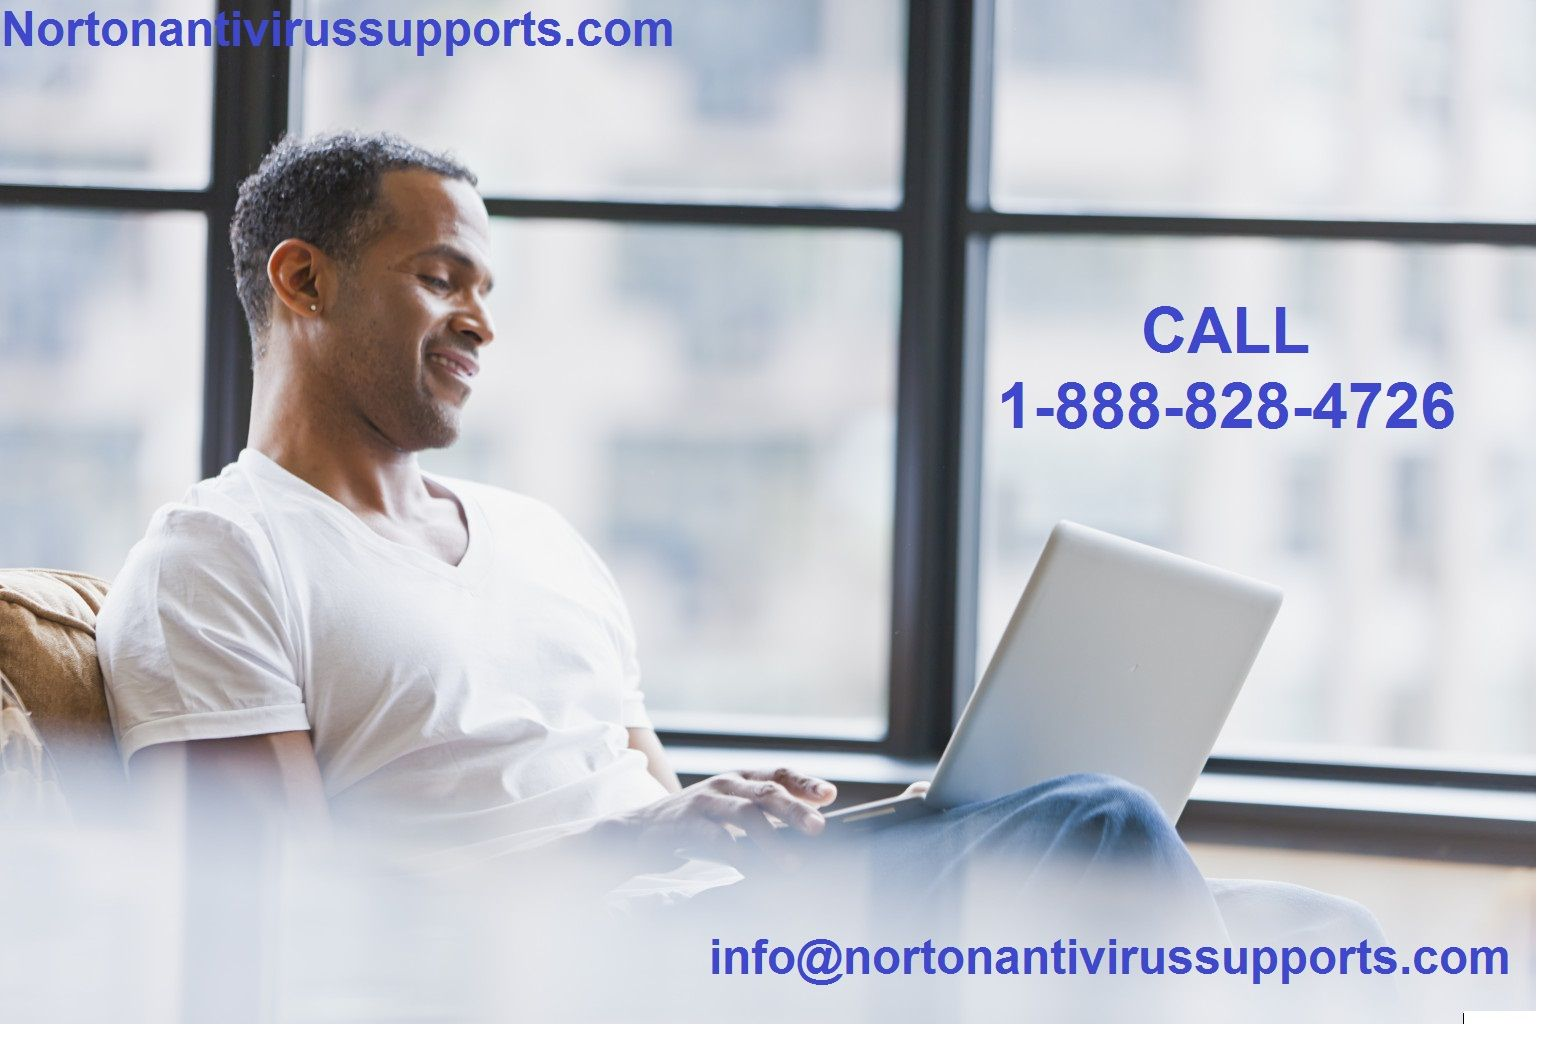 For any enquiry related to Norton products or want to buy Norton products contact #Norton customer services on 1-888-828-4726 or mail us at info@nortonantivirussupports.com